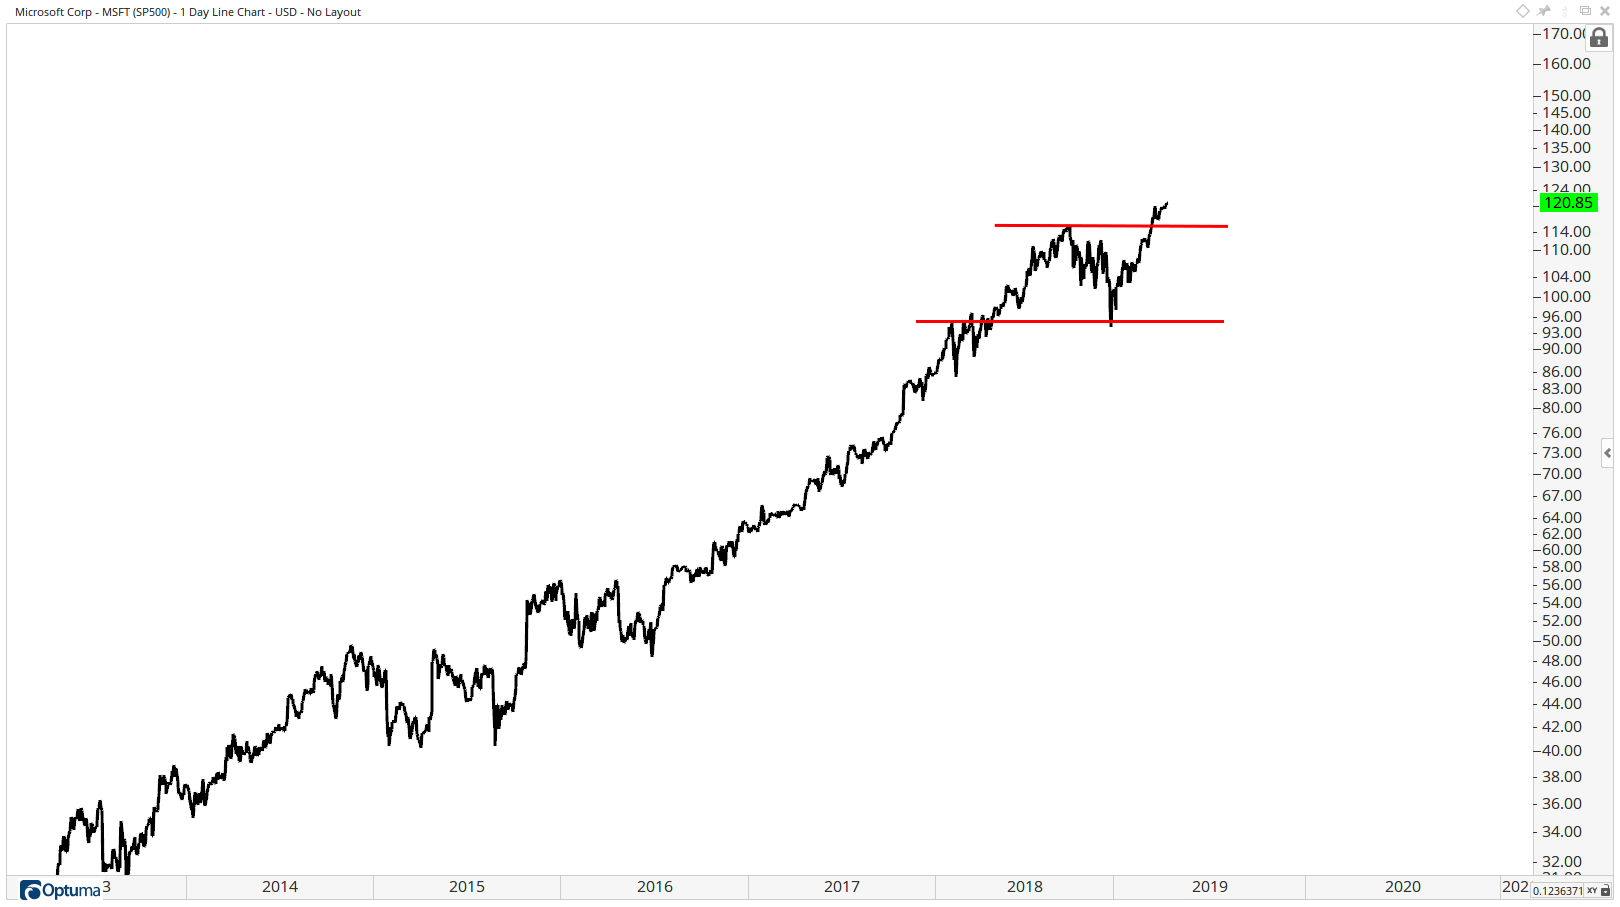 Long-term chart of Microsoft (Nasdaq: MSFT) showing breakout to a new all-time high